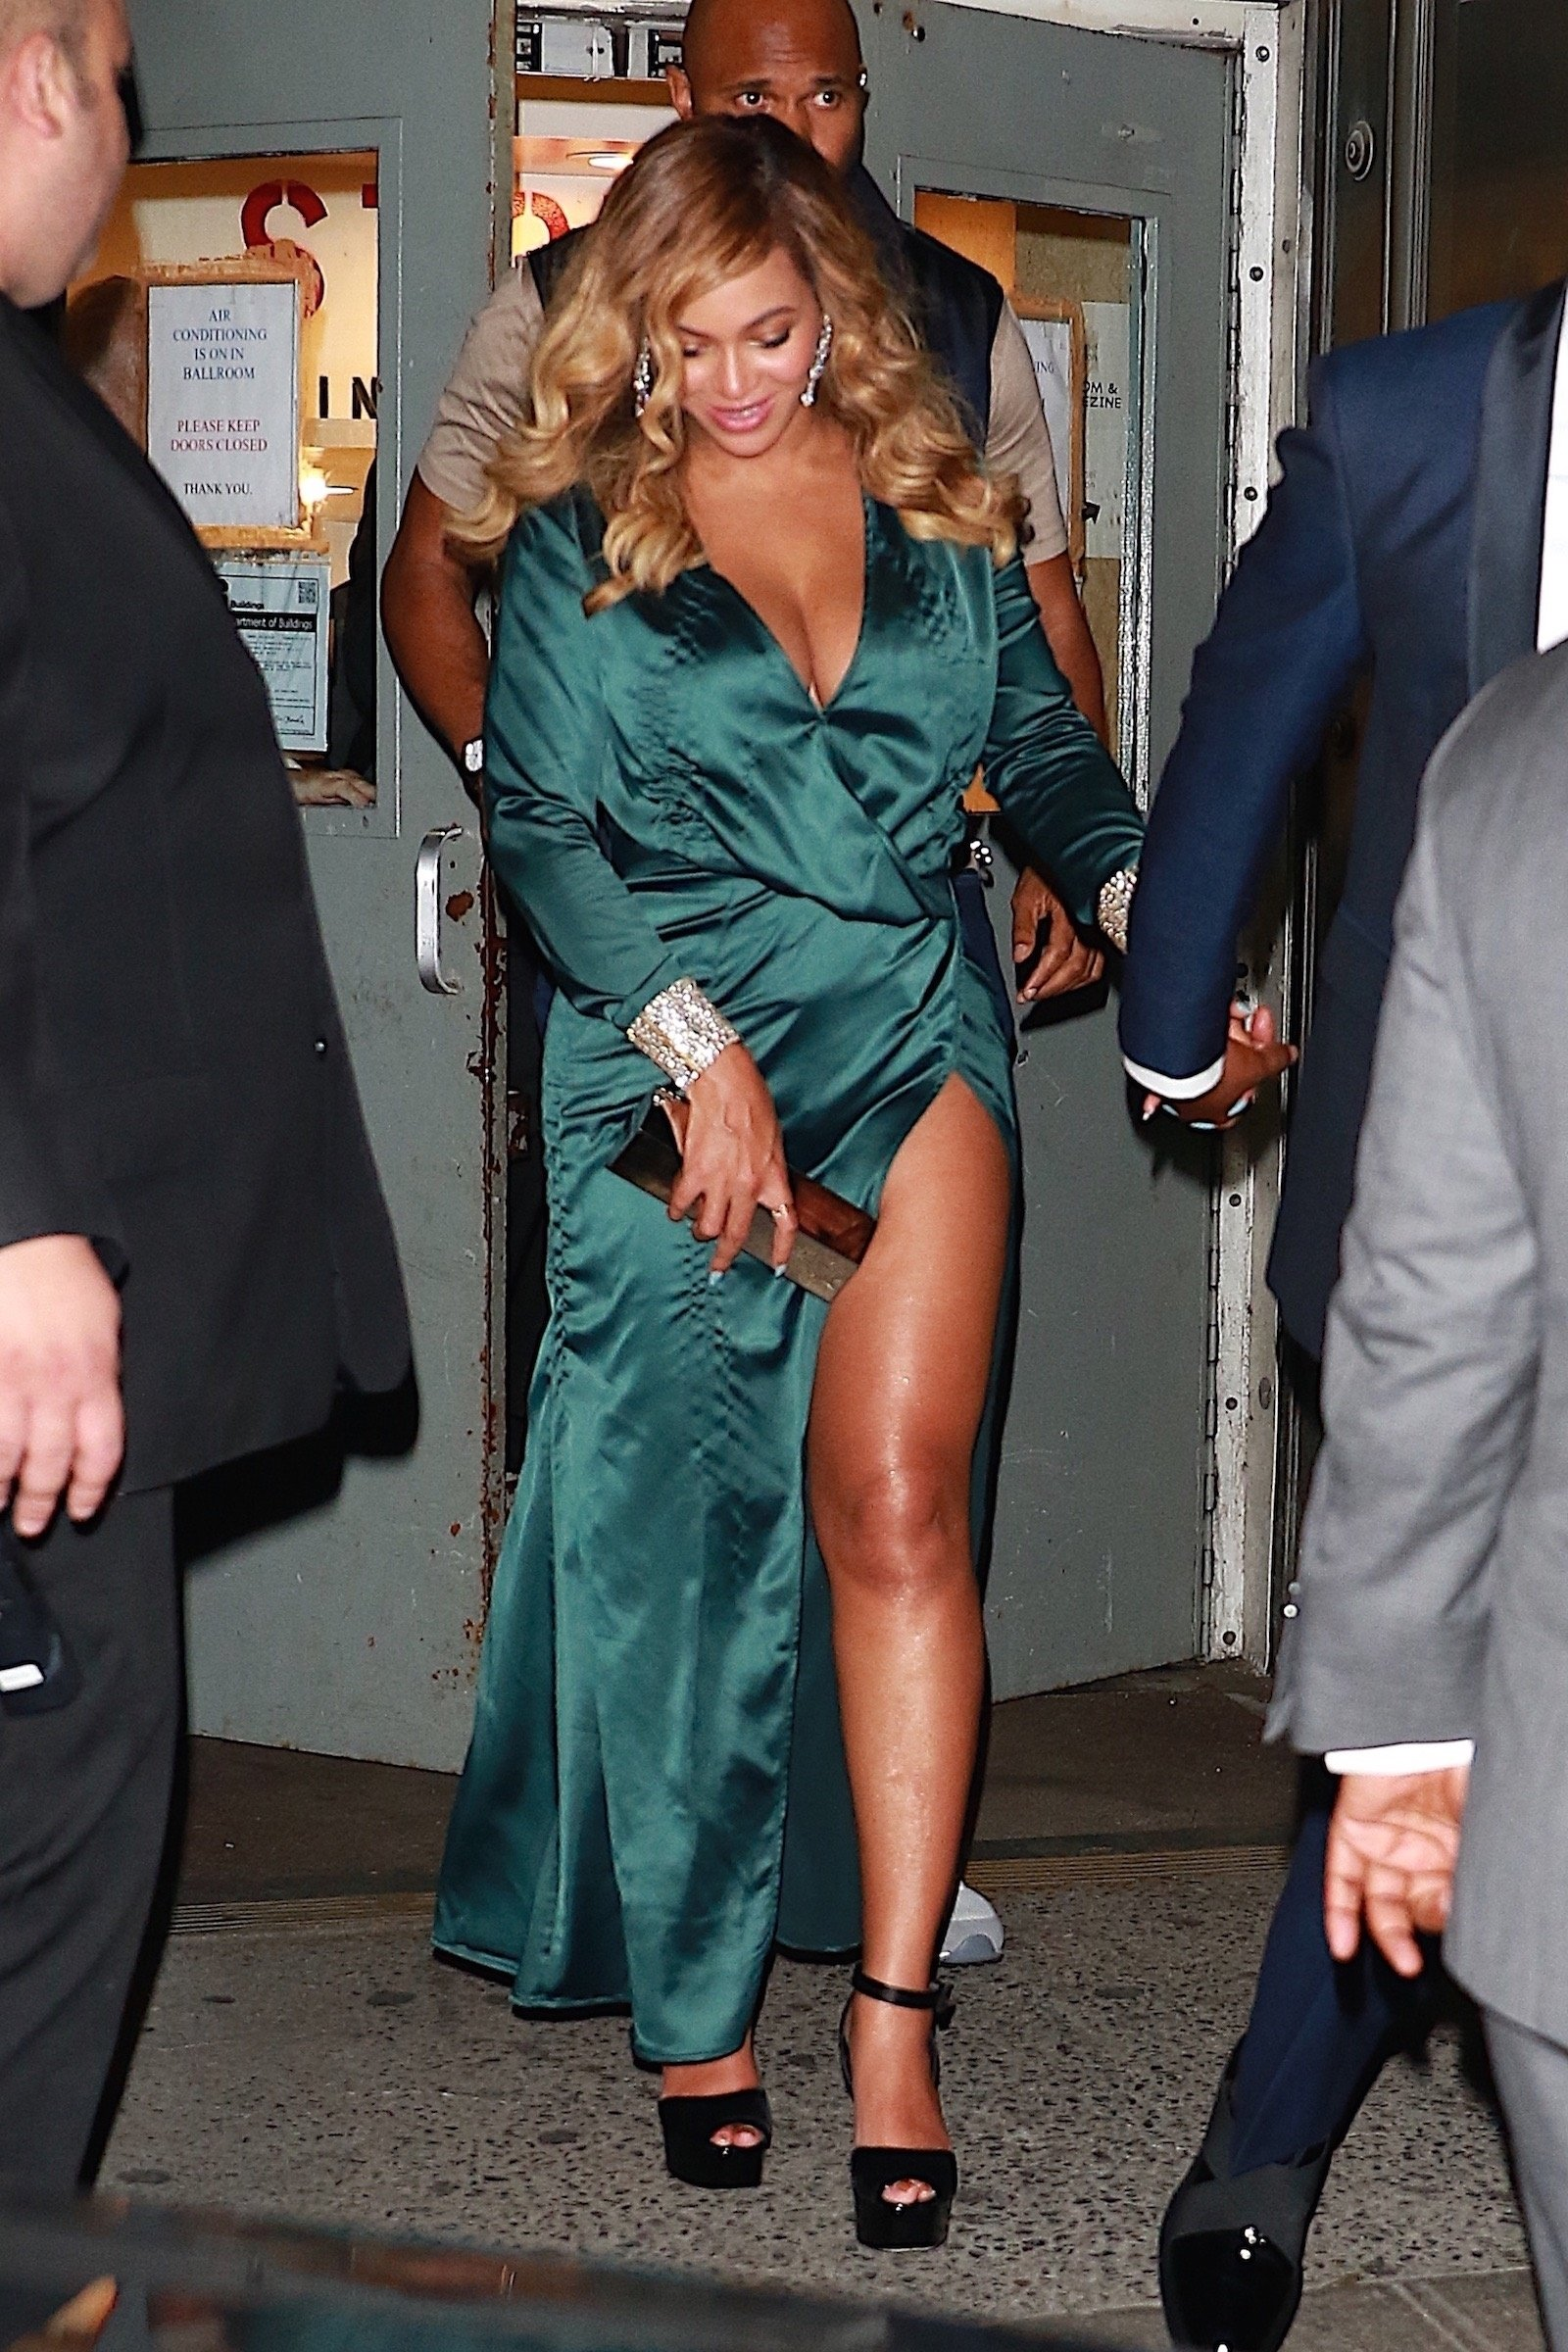 New York, NY  - Jay-Z and Beyonce leave Rihanna's 3rd Annual Diamond Ball Benefitting The Clara Lionel Foundation at Cipriani Wall Street.  Pictured: Beyonce, Jay-Z  BACKGRID USA 14 SEPTEMBER 2017, Image: 349416278, License: Rights-managed, Restrictions: , Model Release: no, Credit line: Profimedia, AKM-GSI